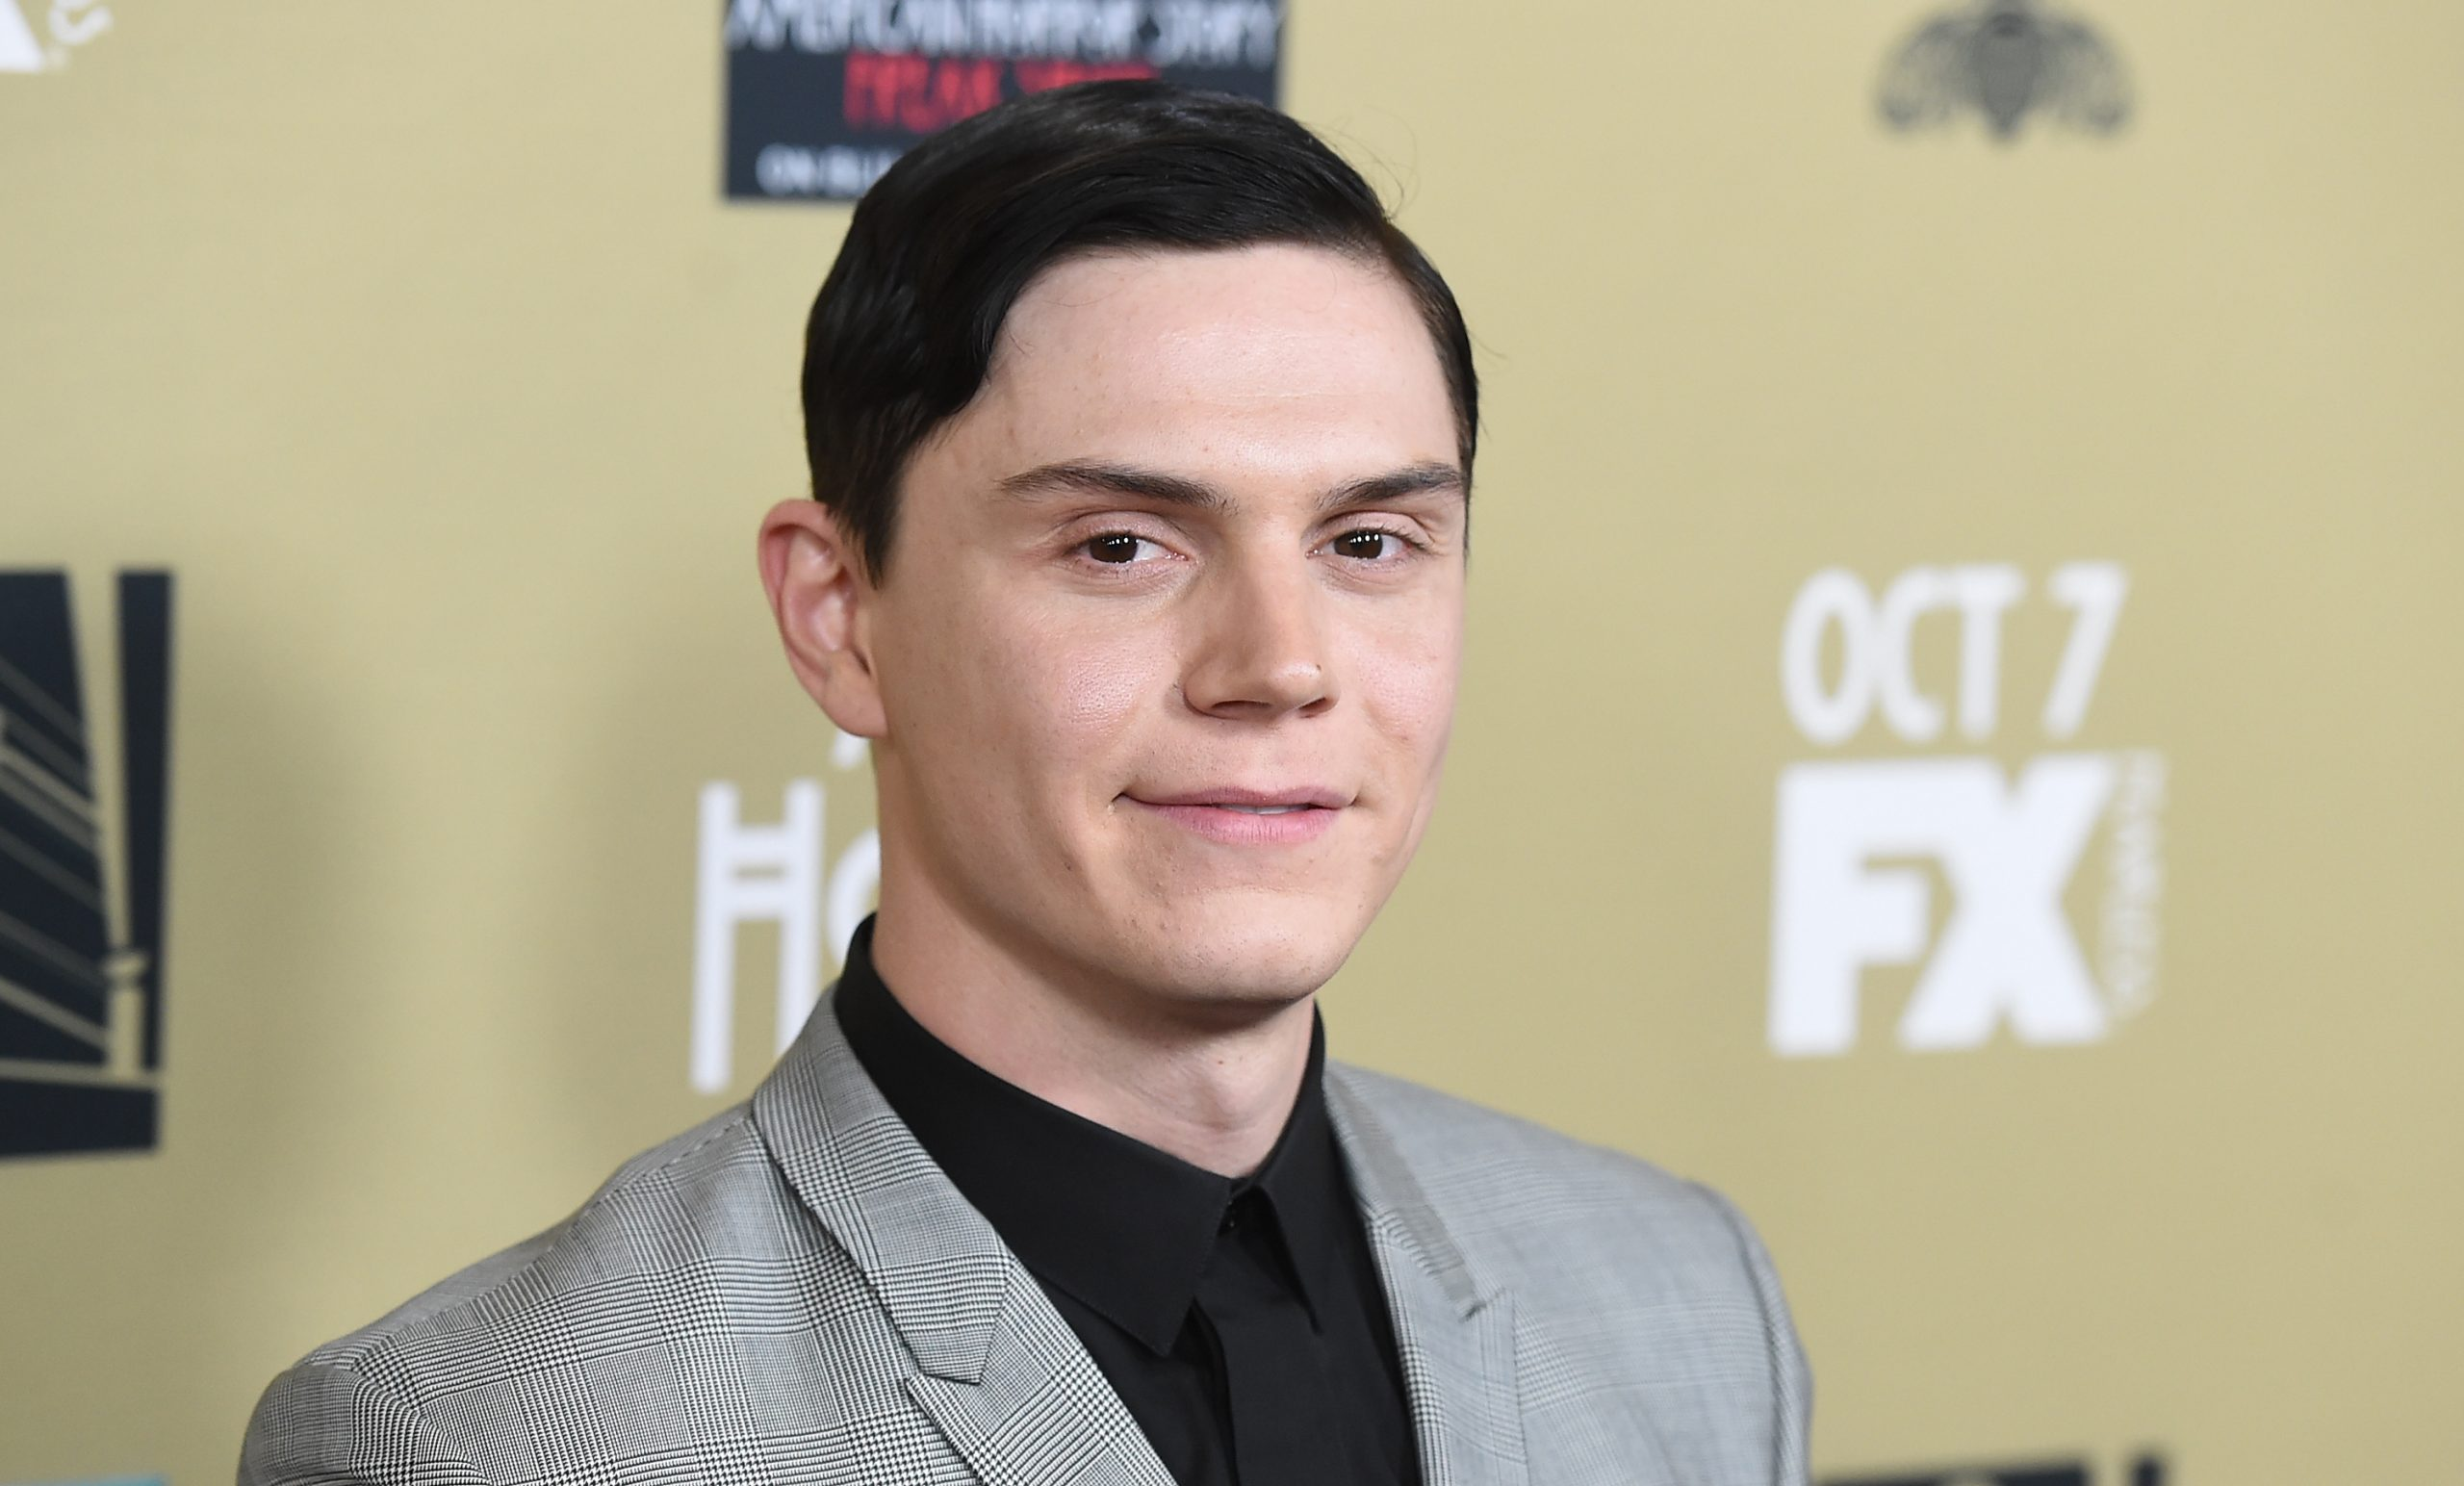 Evan Peters at the premiere screening of FX's 'American Horror Story: Hotel' on Oct. 3, 2015